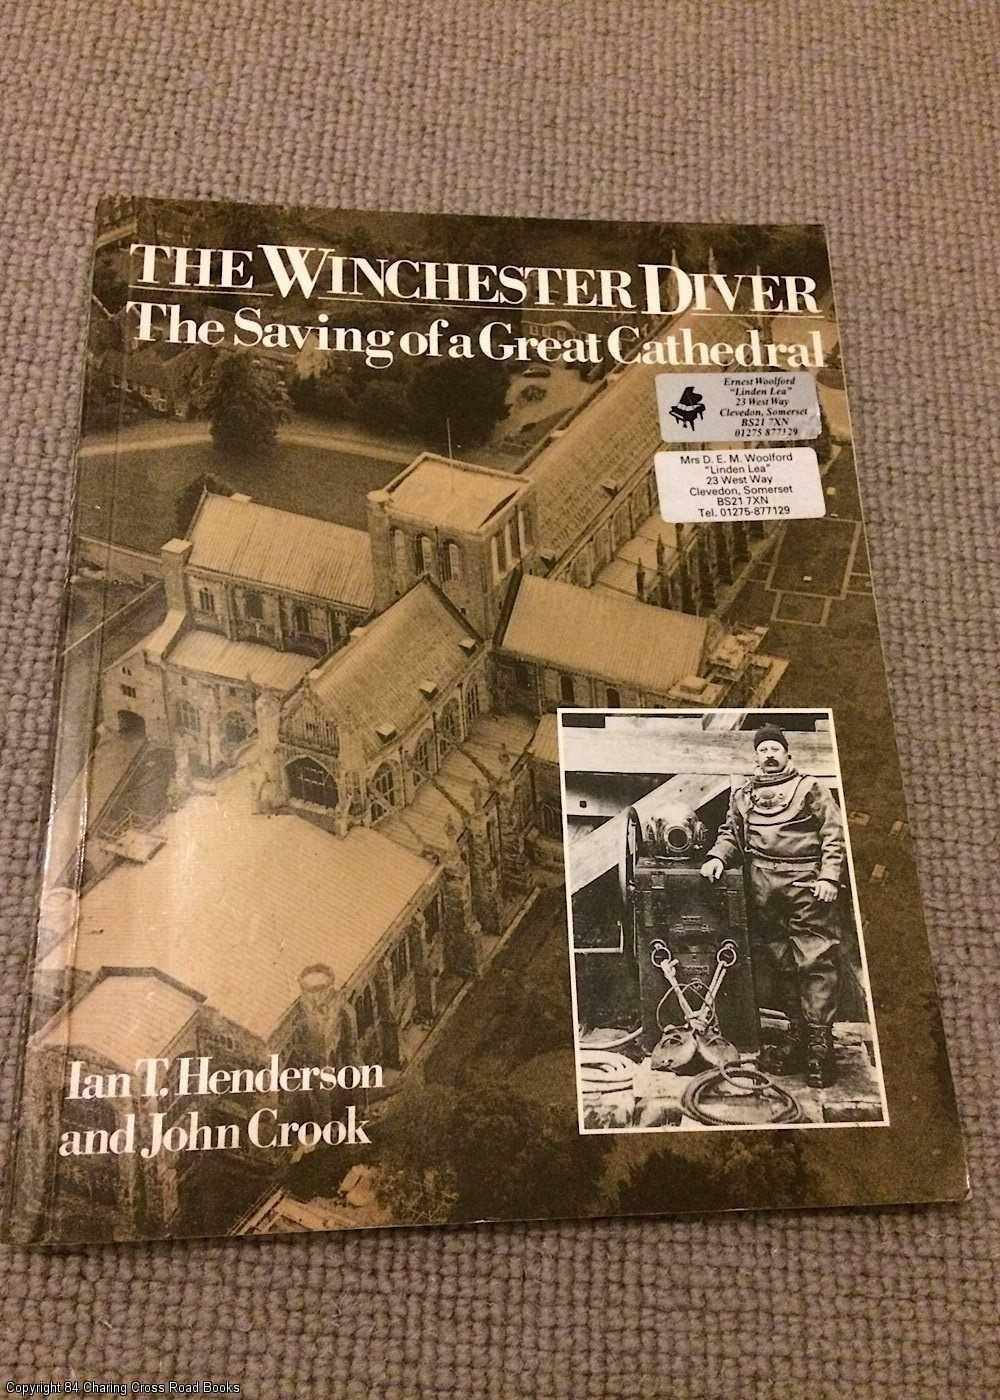 CROOK, JOHN, HENDERSON, IAN THOMSON - The Winchester Diver: The Saving of a Great Cathedral